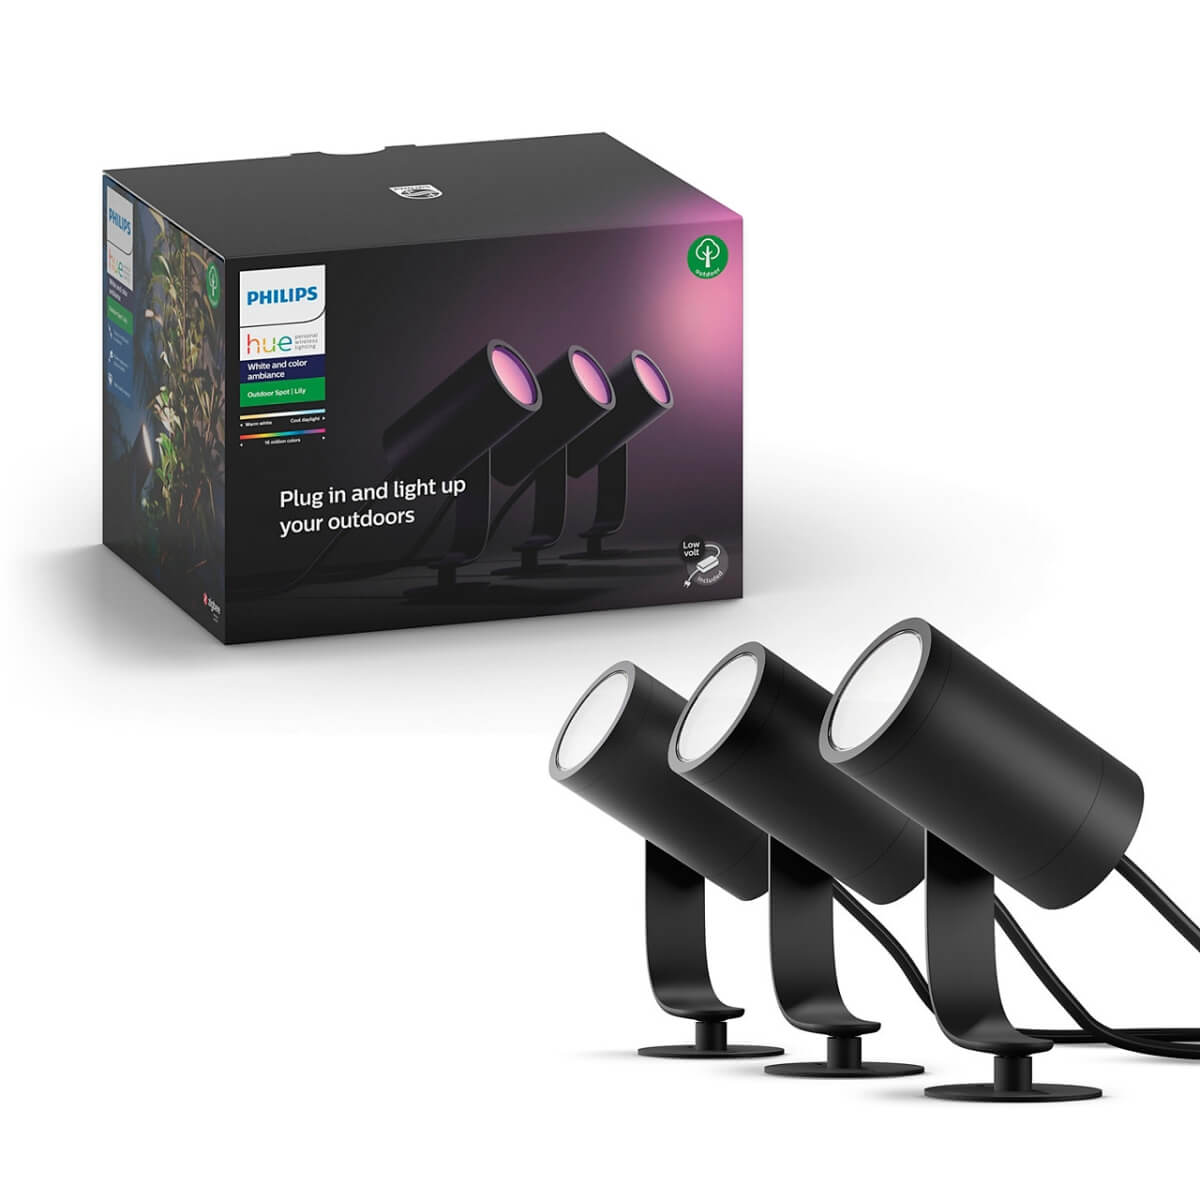 Philips Hue Outdoor Lily Gartenspot White and Color Ambiance RGBW Basis-Set 3x600lm Niedervolt IP65